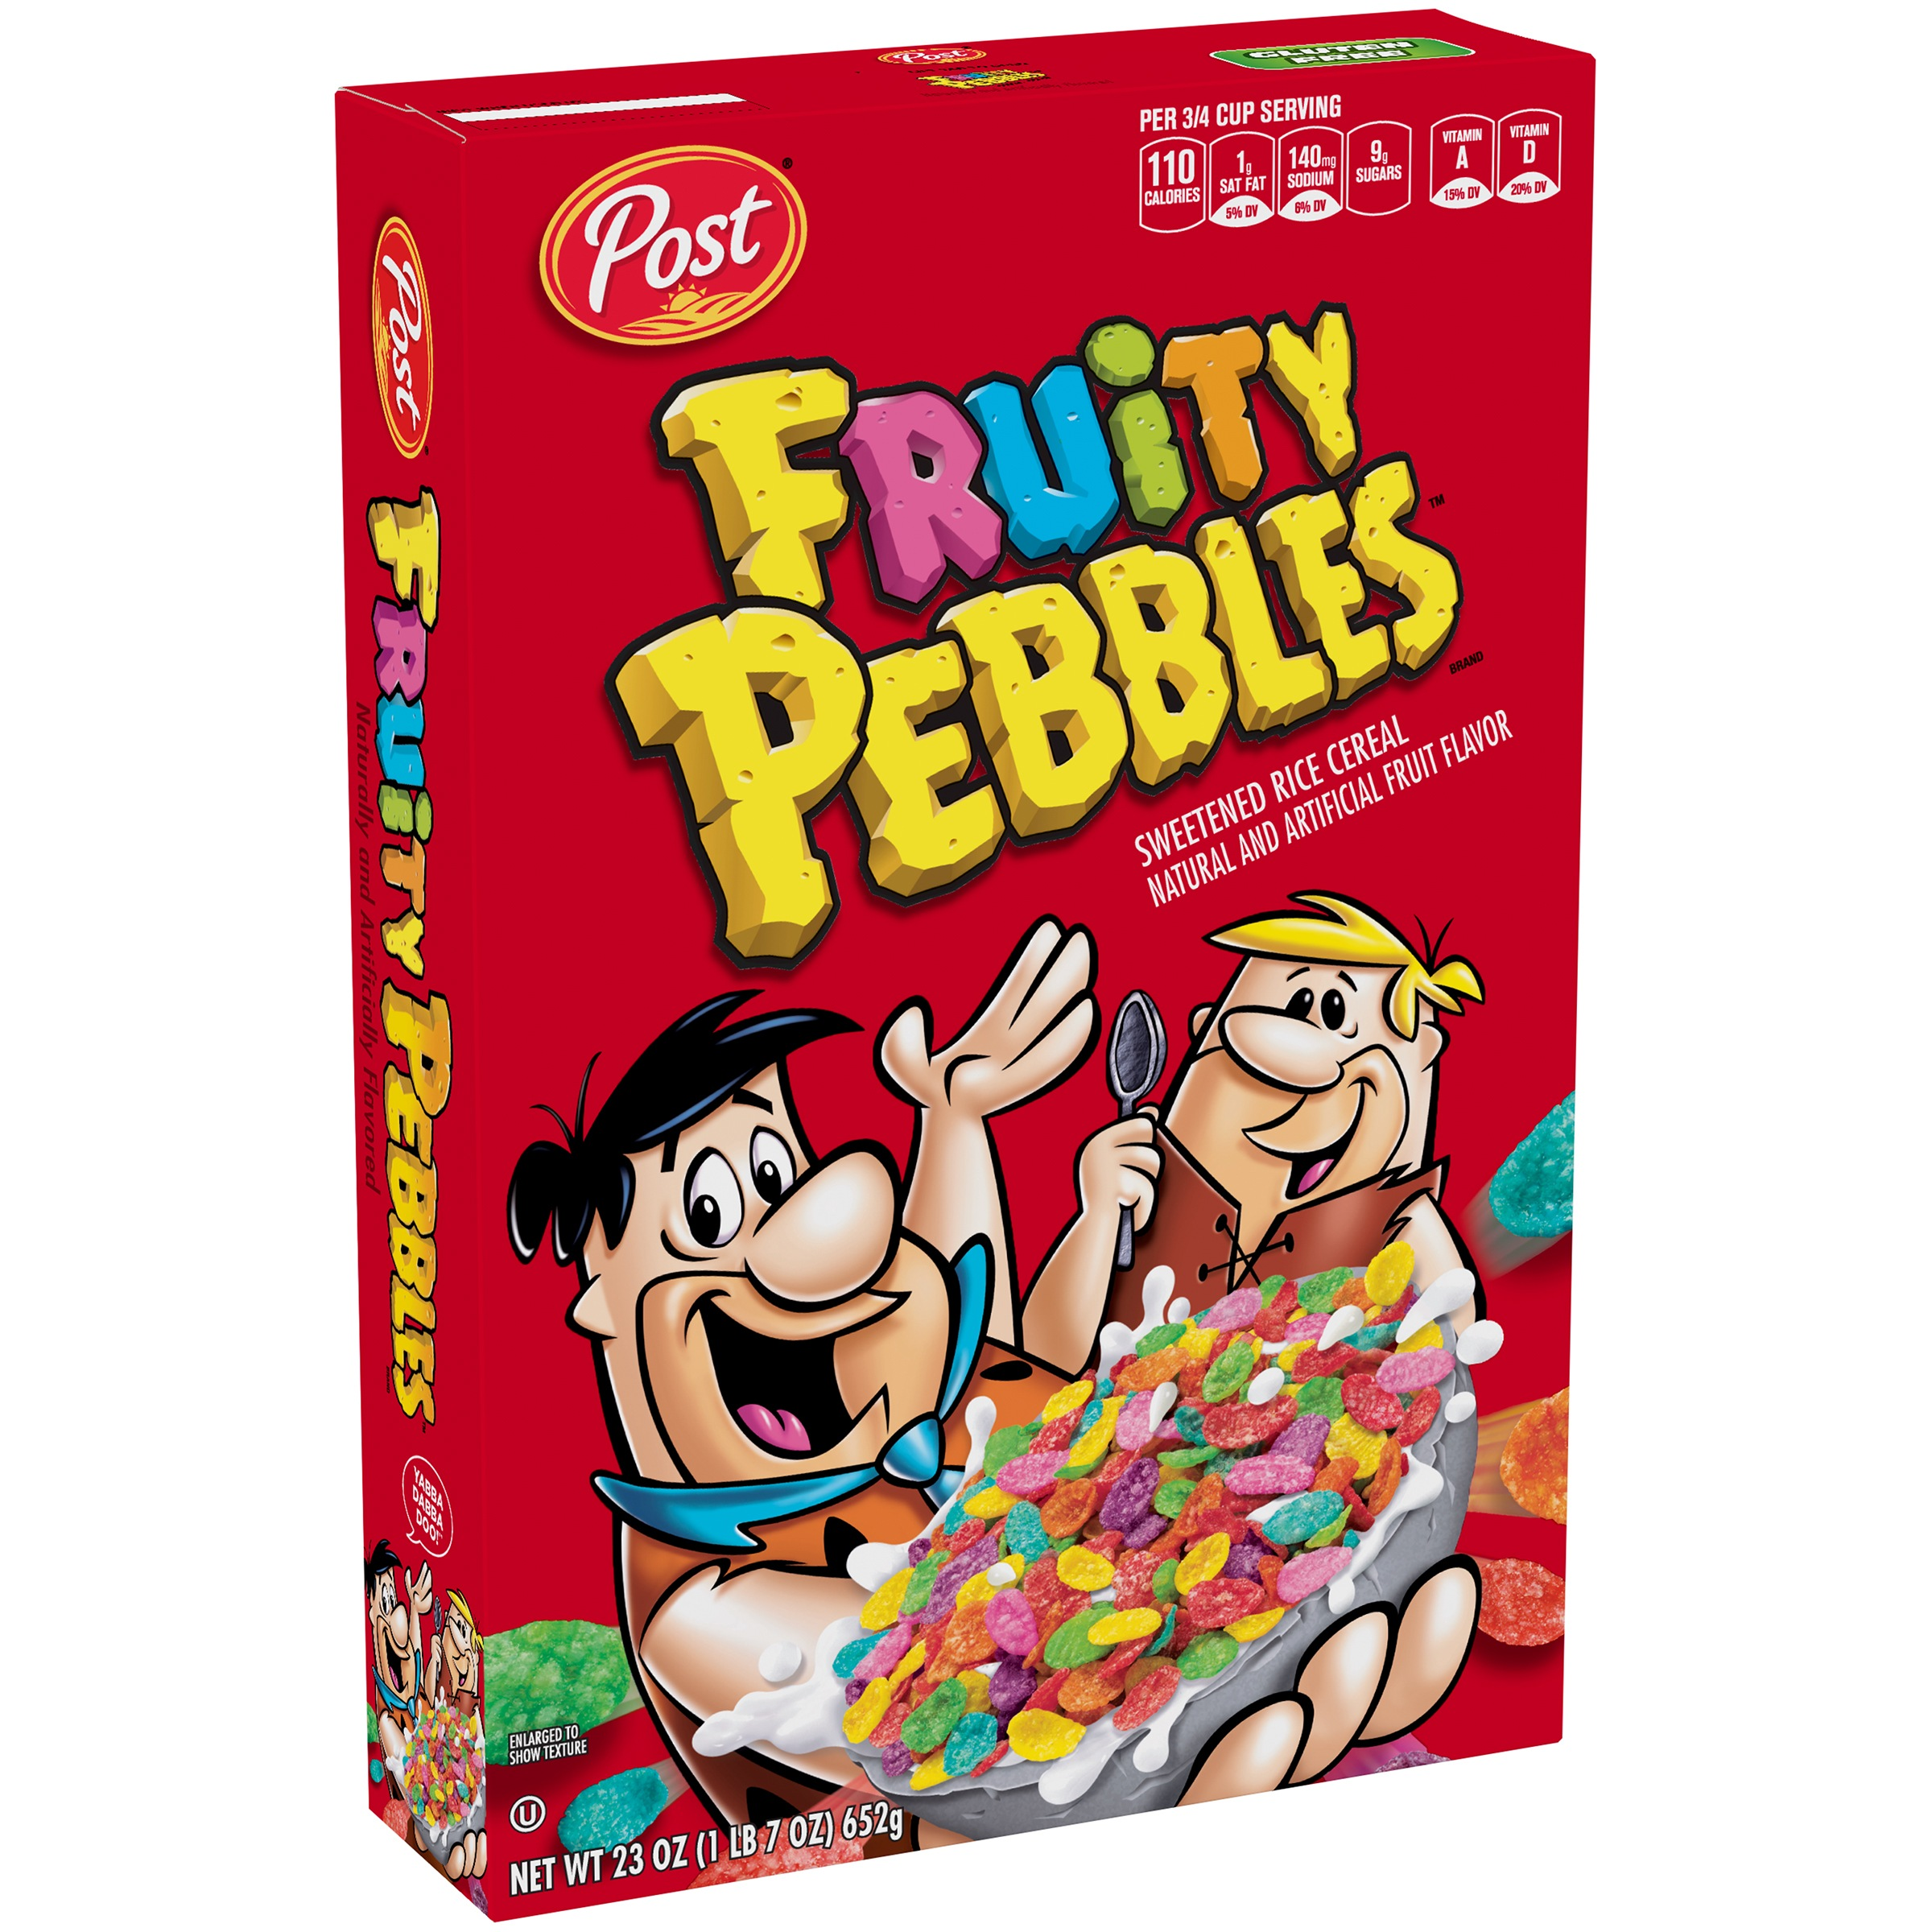 Post Fruity Pebbles Gluten Free Breakfast Cereal, 23 Oz